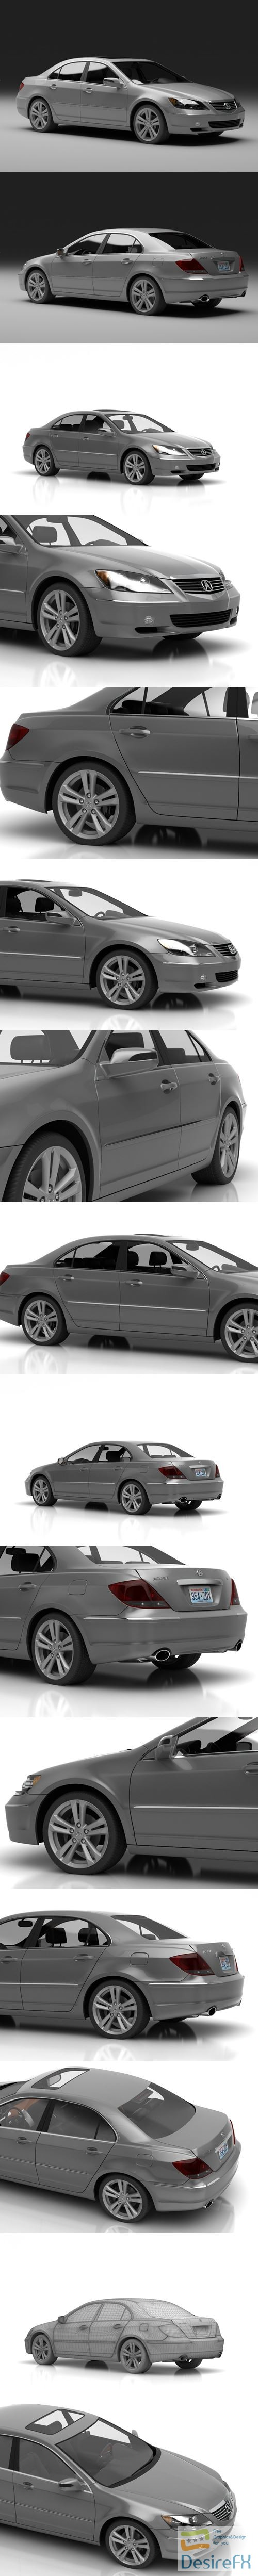 3d-models - Acura ML 3D Model